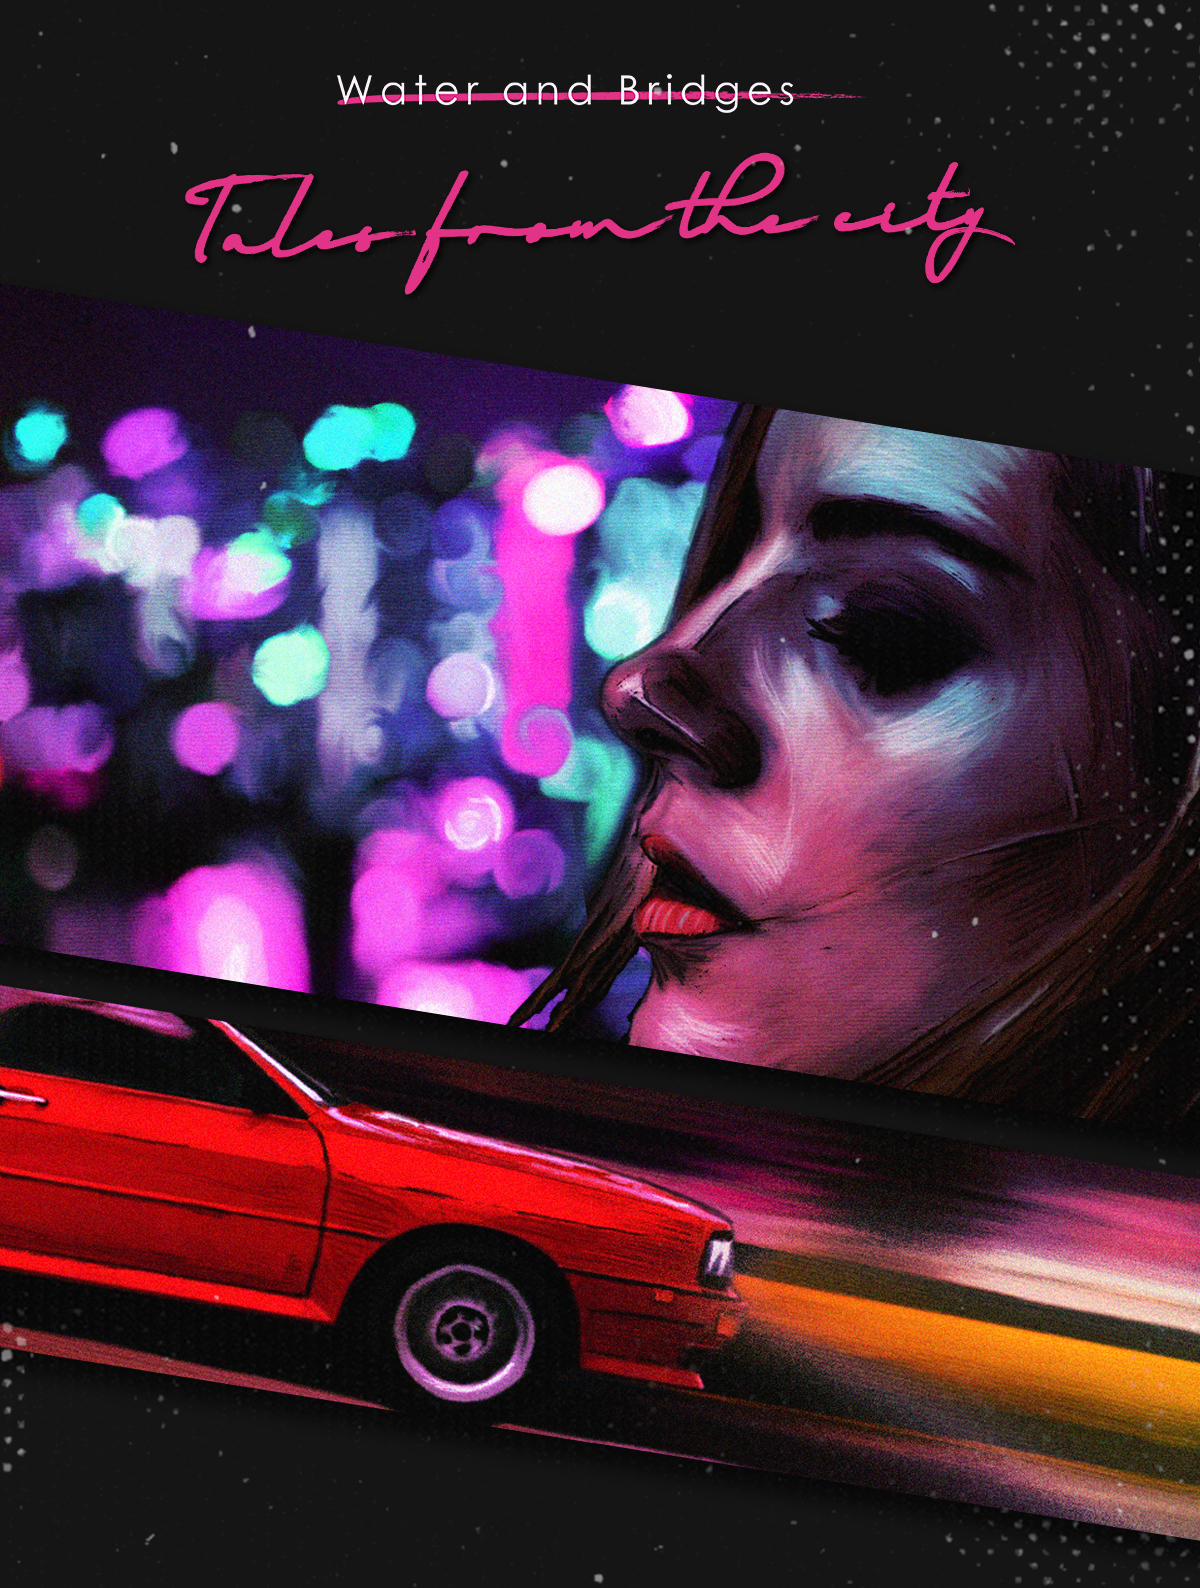 Tales From The City -Album Cover Design (synthwave) on Behance